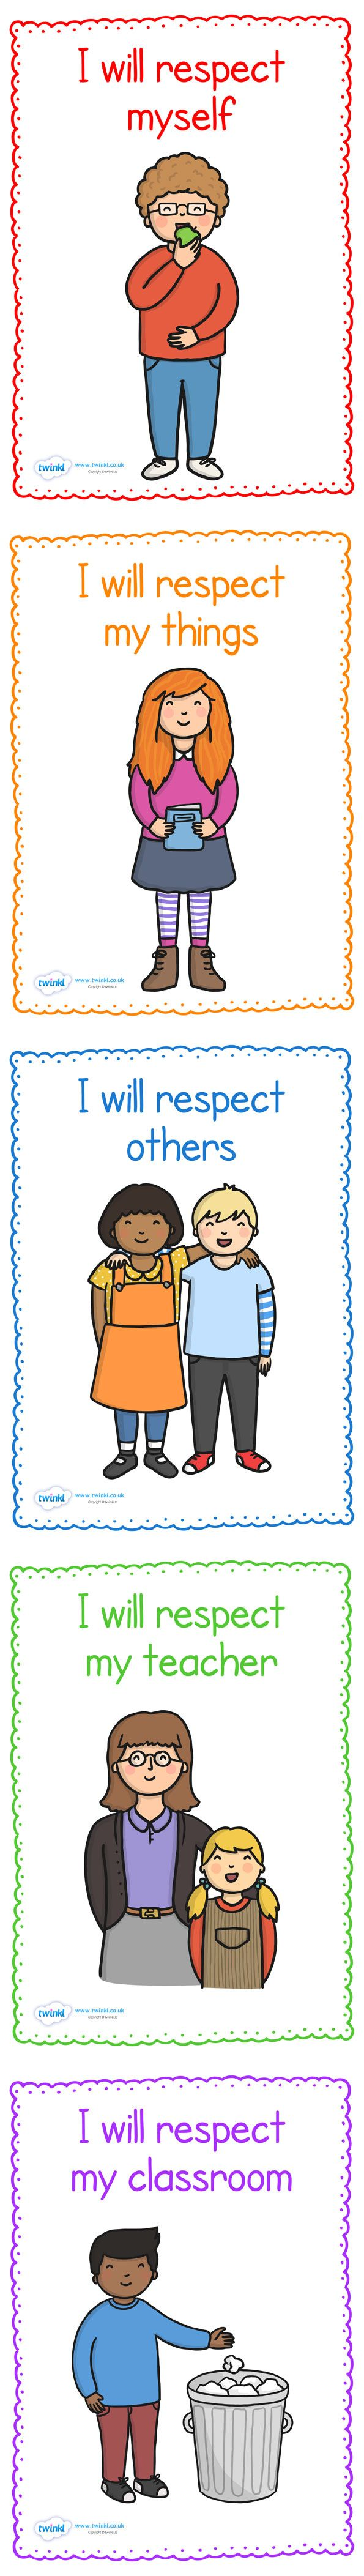 Respect in The Classroom Display Posters   printables for Kindergarten